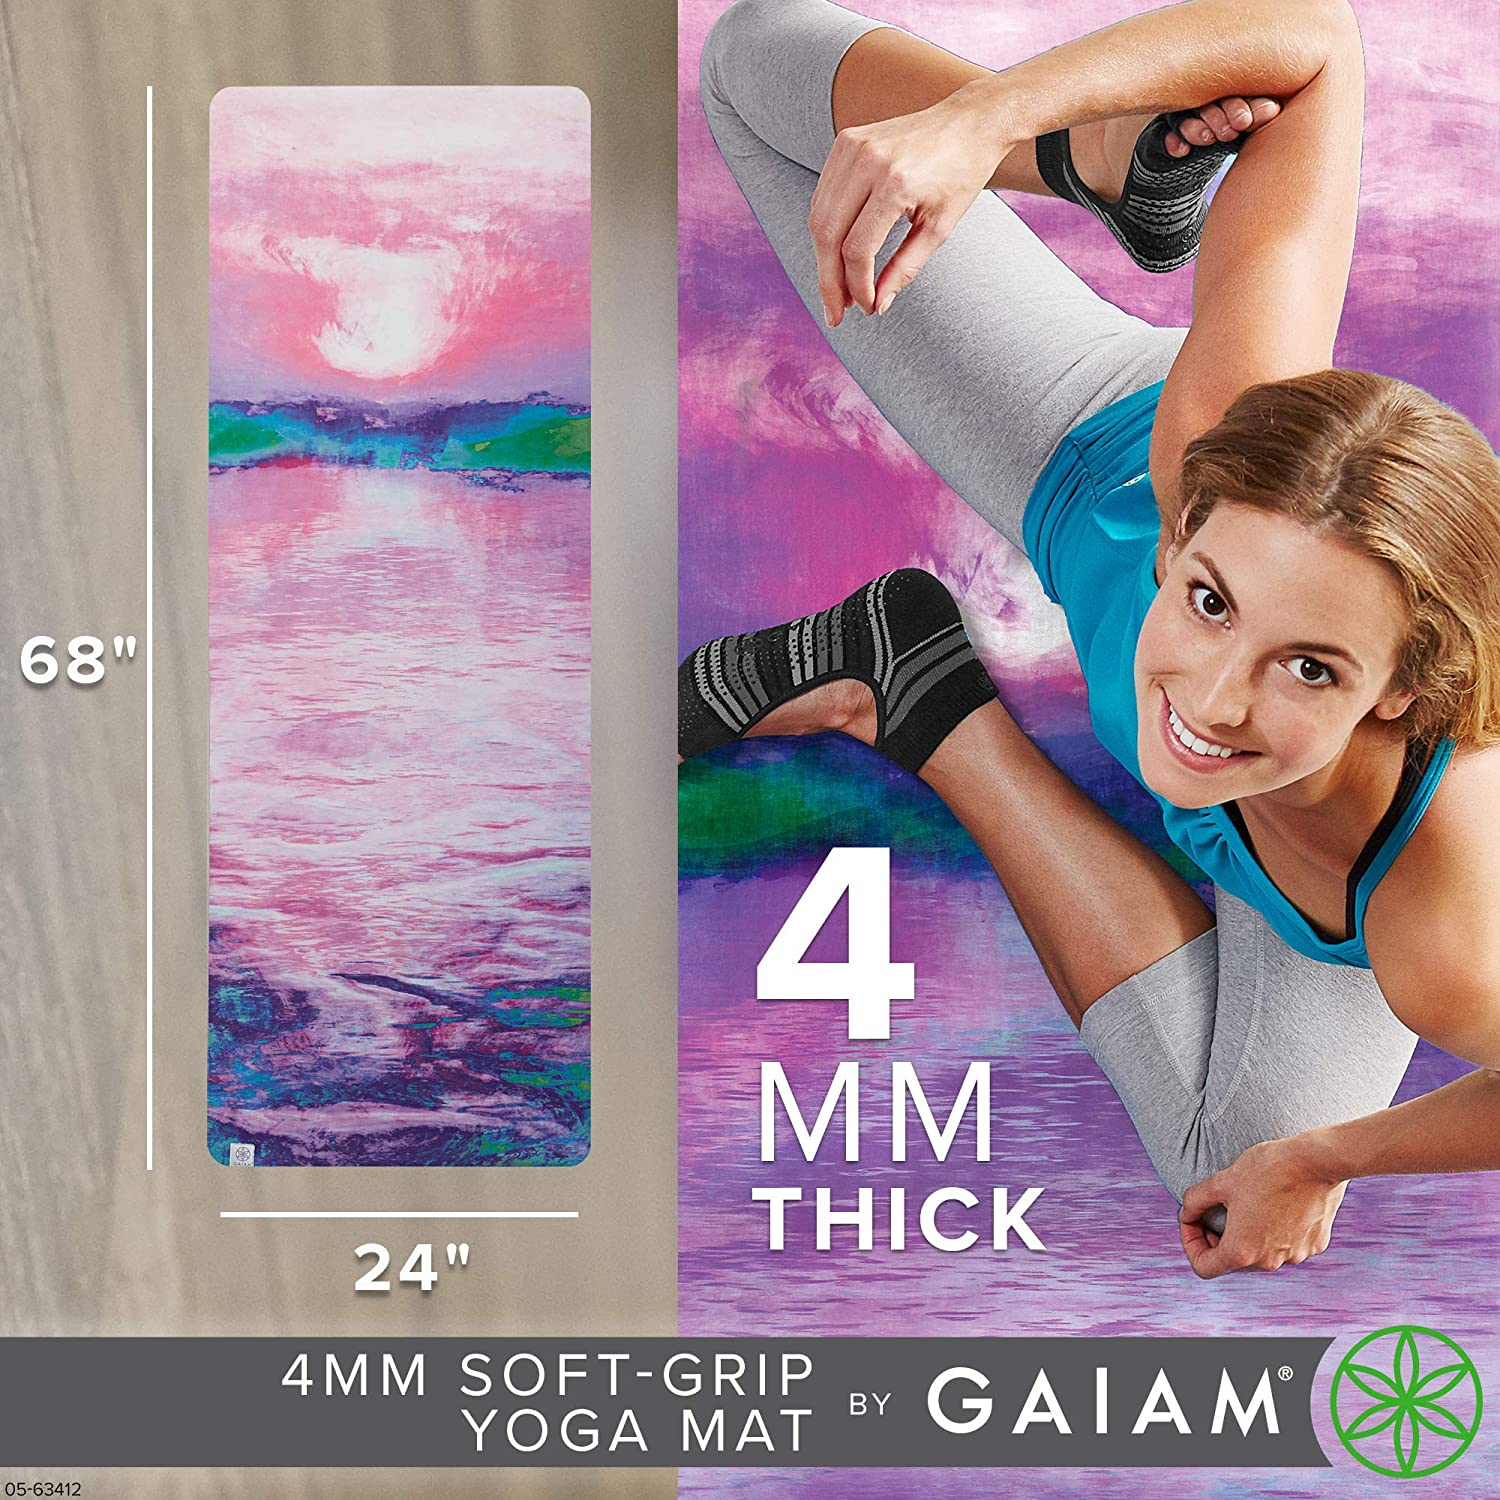 Gaiam Soft-Grip Yoga Mat